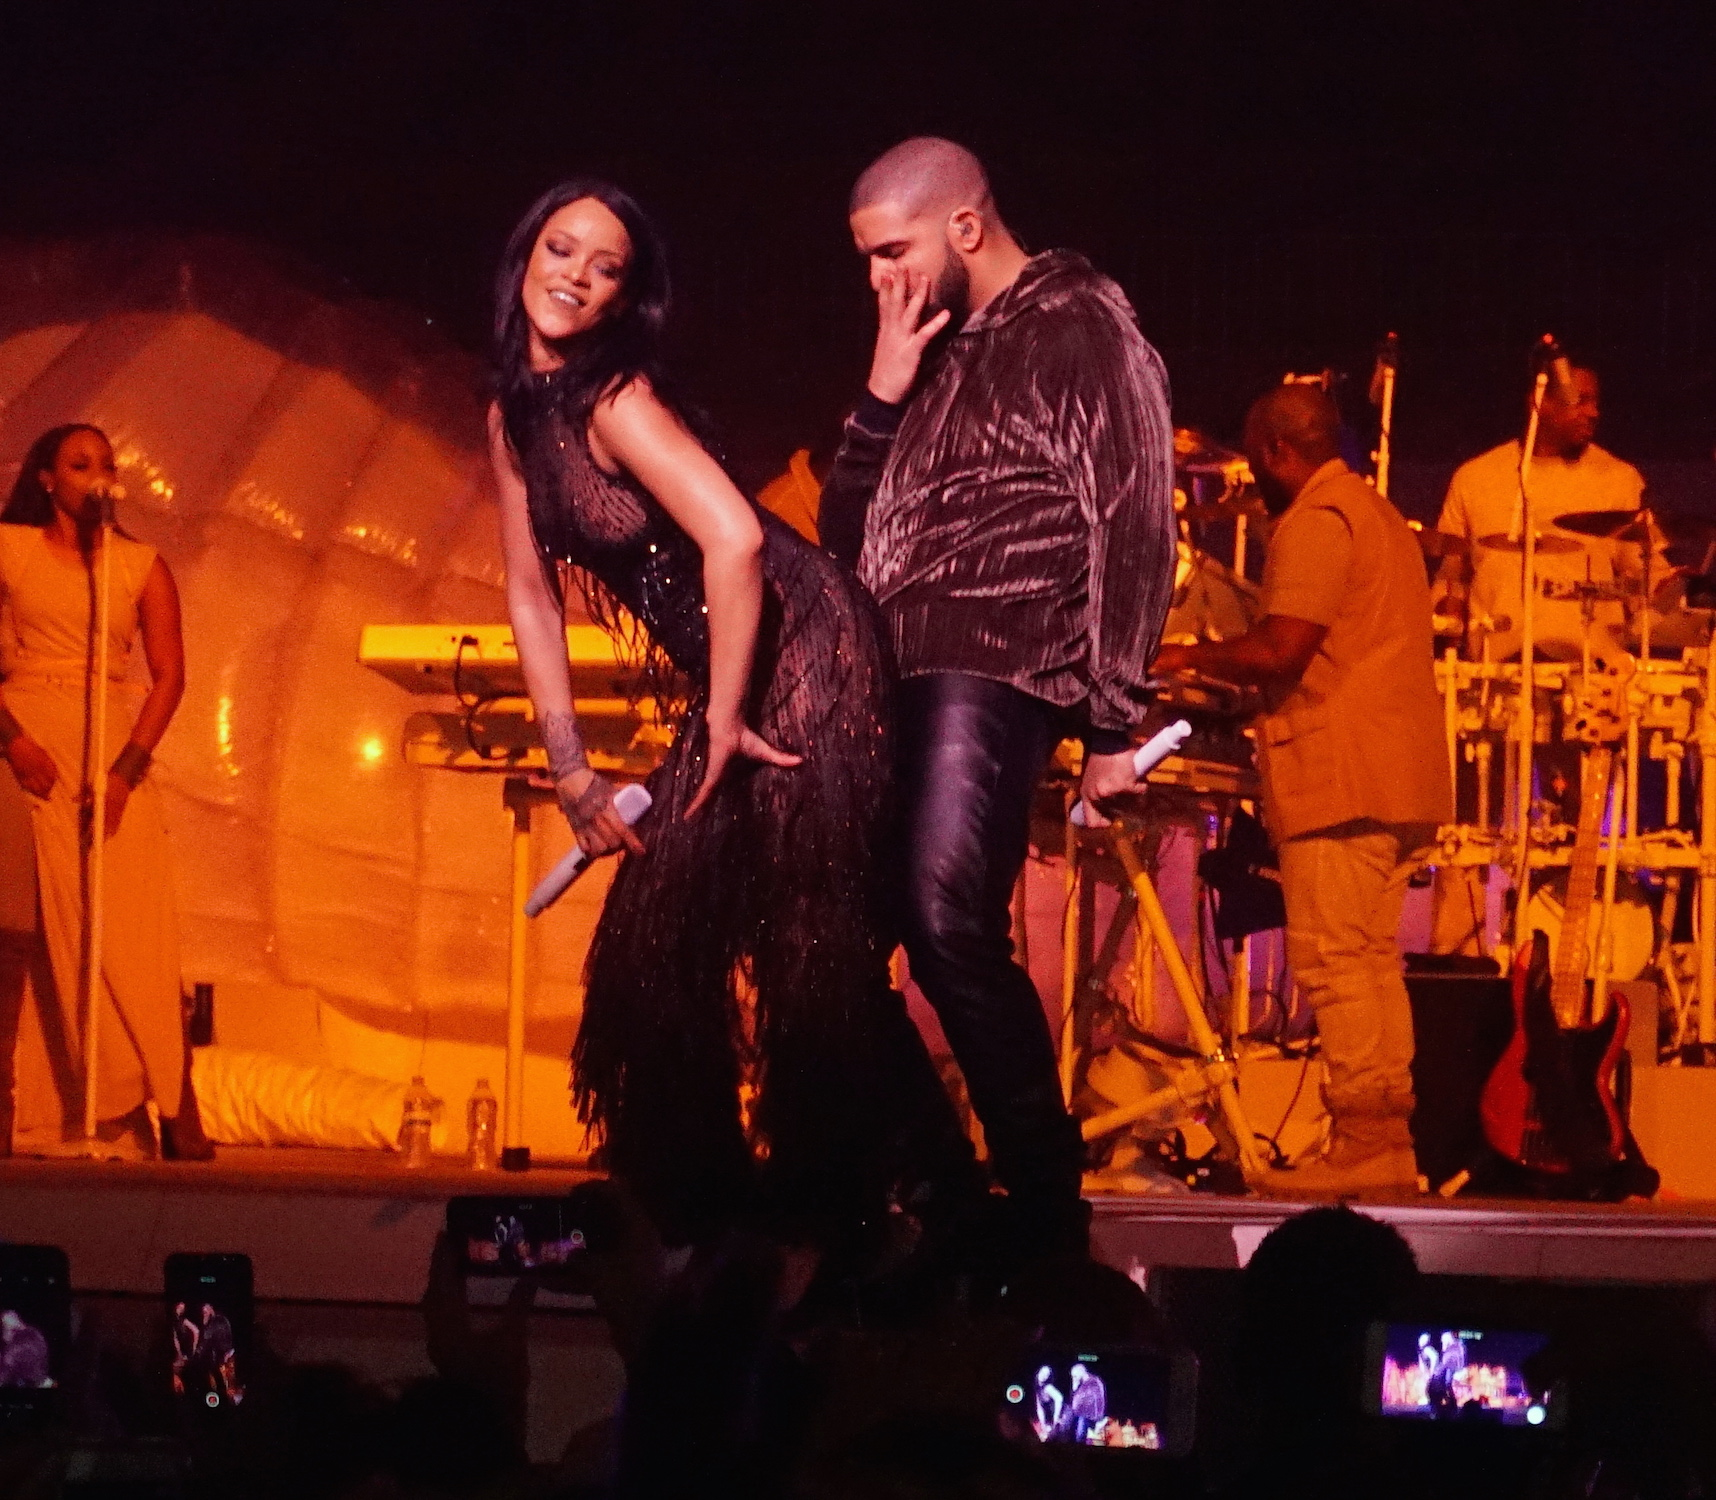 Hot performance: Rihanna and Drake got flirty as they sang Work during her Anti World Tour date in Miami (Picture: 247PAPS.TV / Splash News)